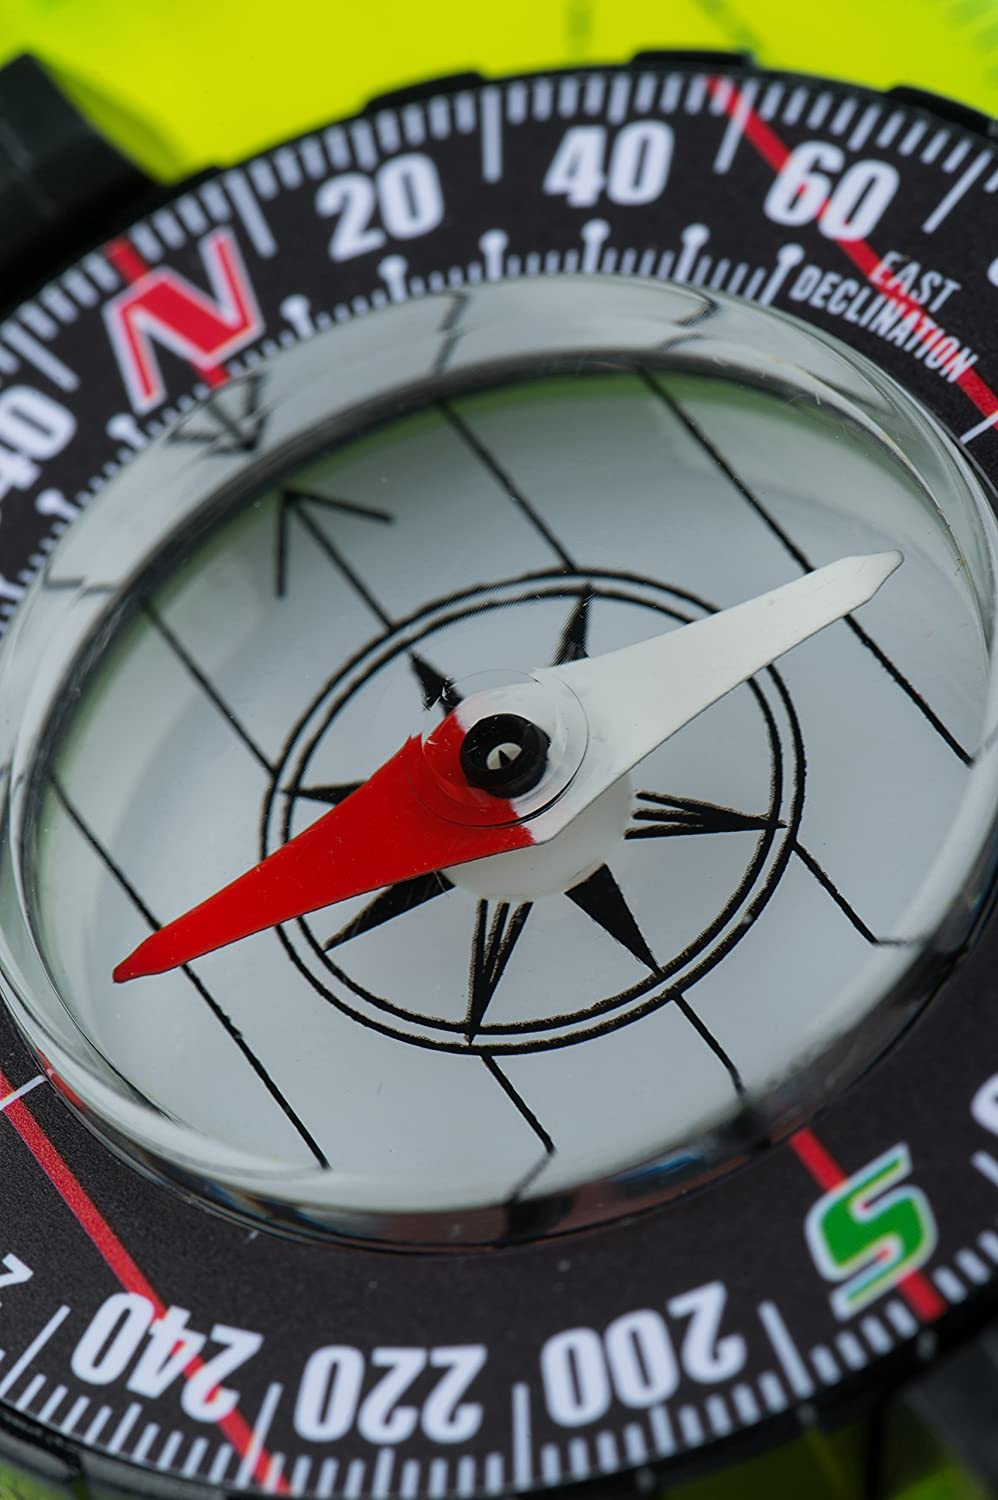 AceCamp Mirror Compass Outdoor Premium Portable Map Compass Navigation Tools for Camping Hiking